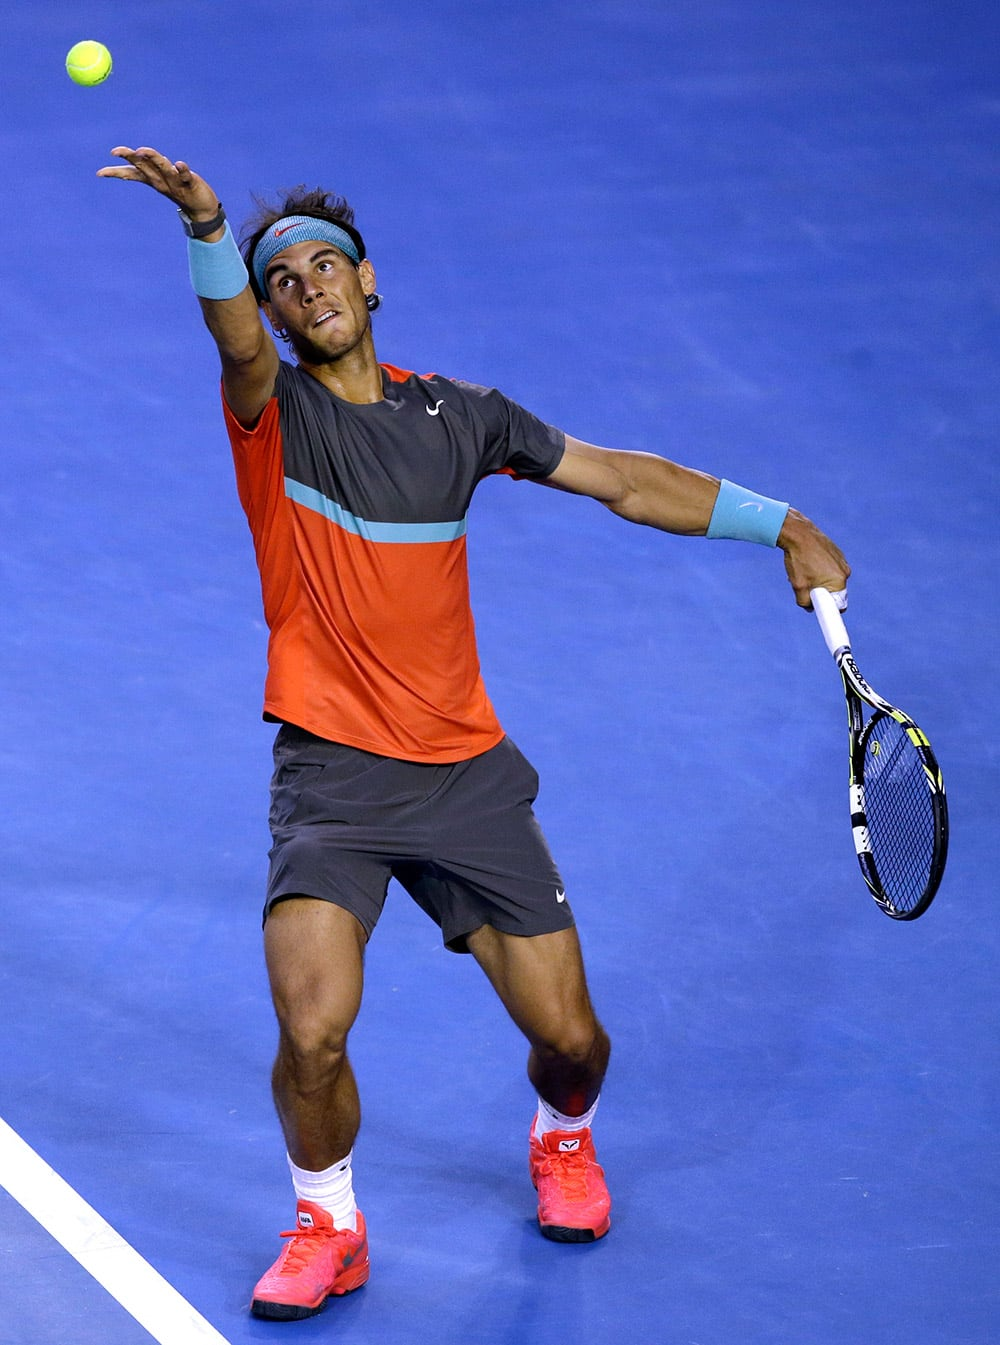 Rafael Nadal of Spain serves to Roger Federer of Switzerland during their semifinal at the Australian Open tennis championship in Melbourne.